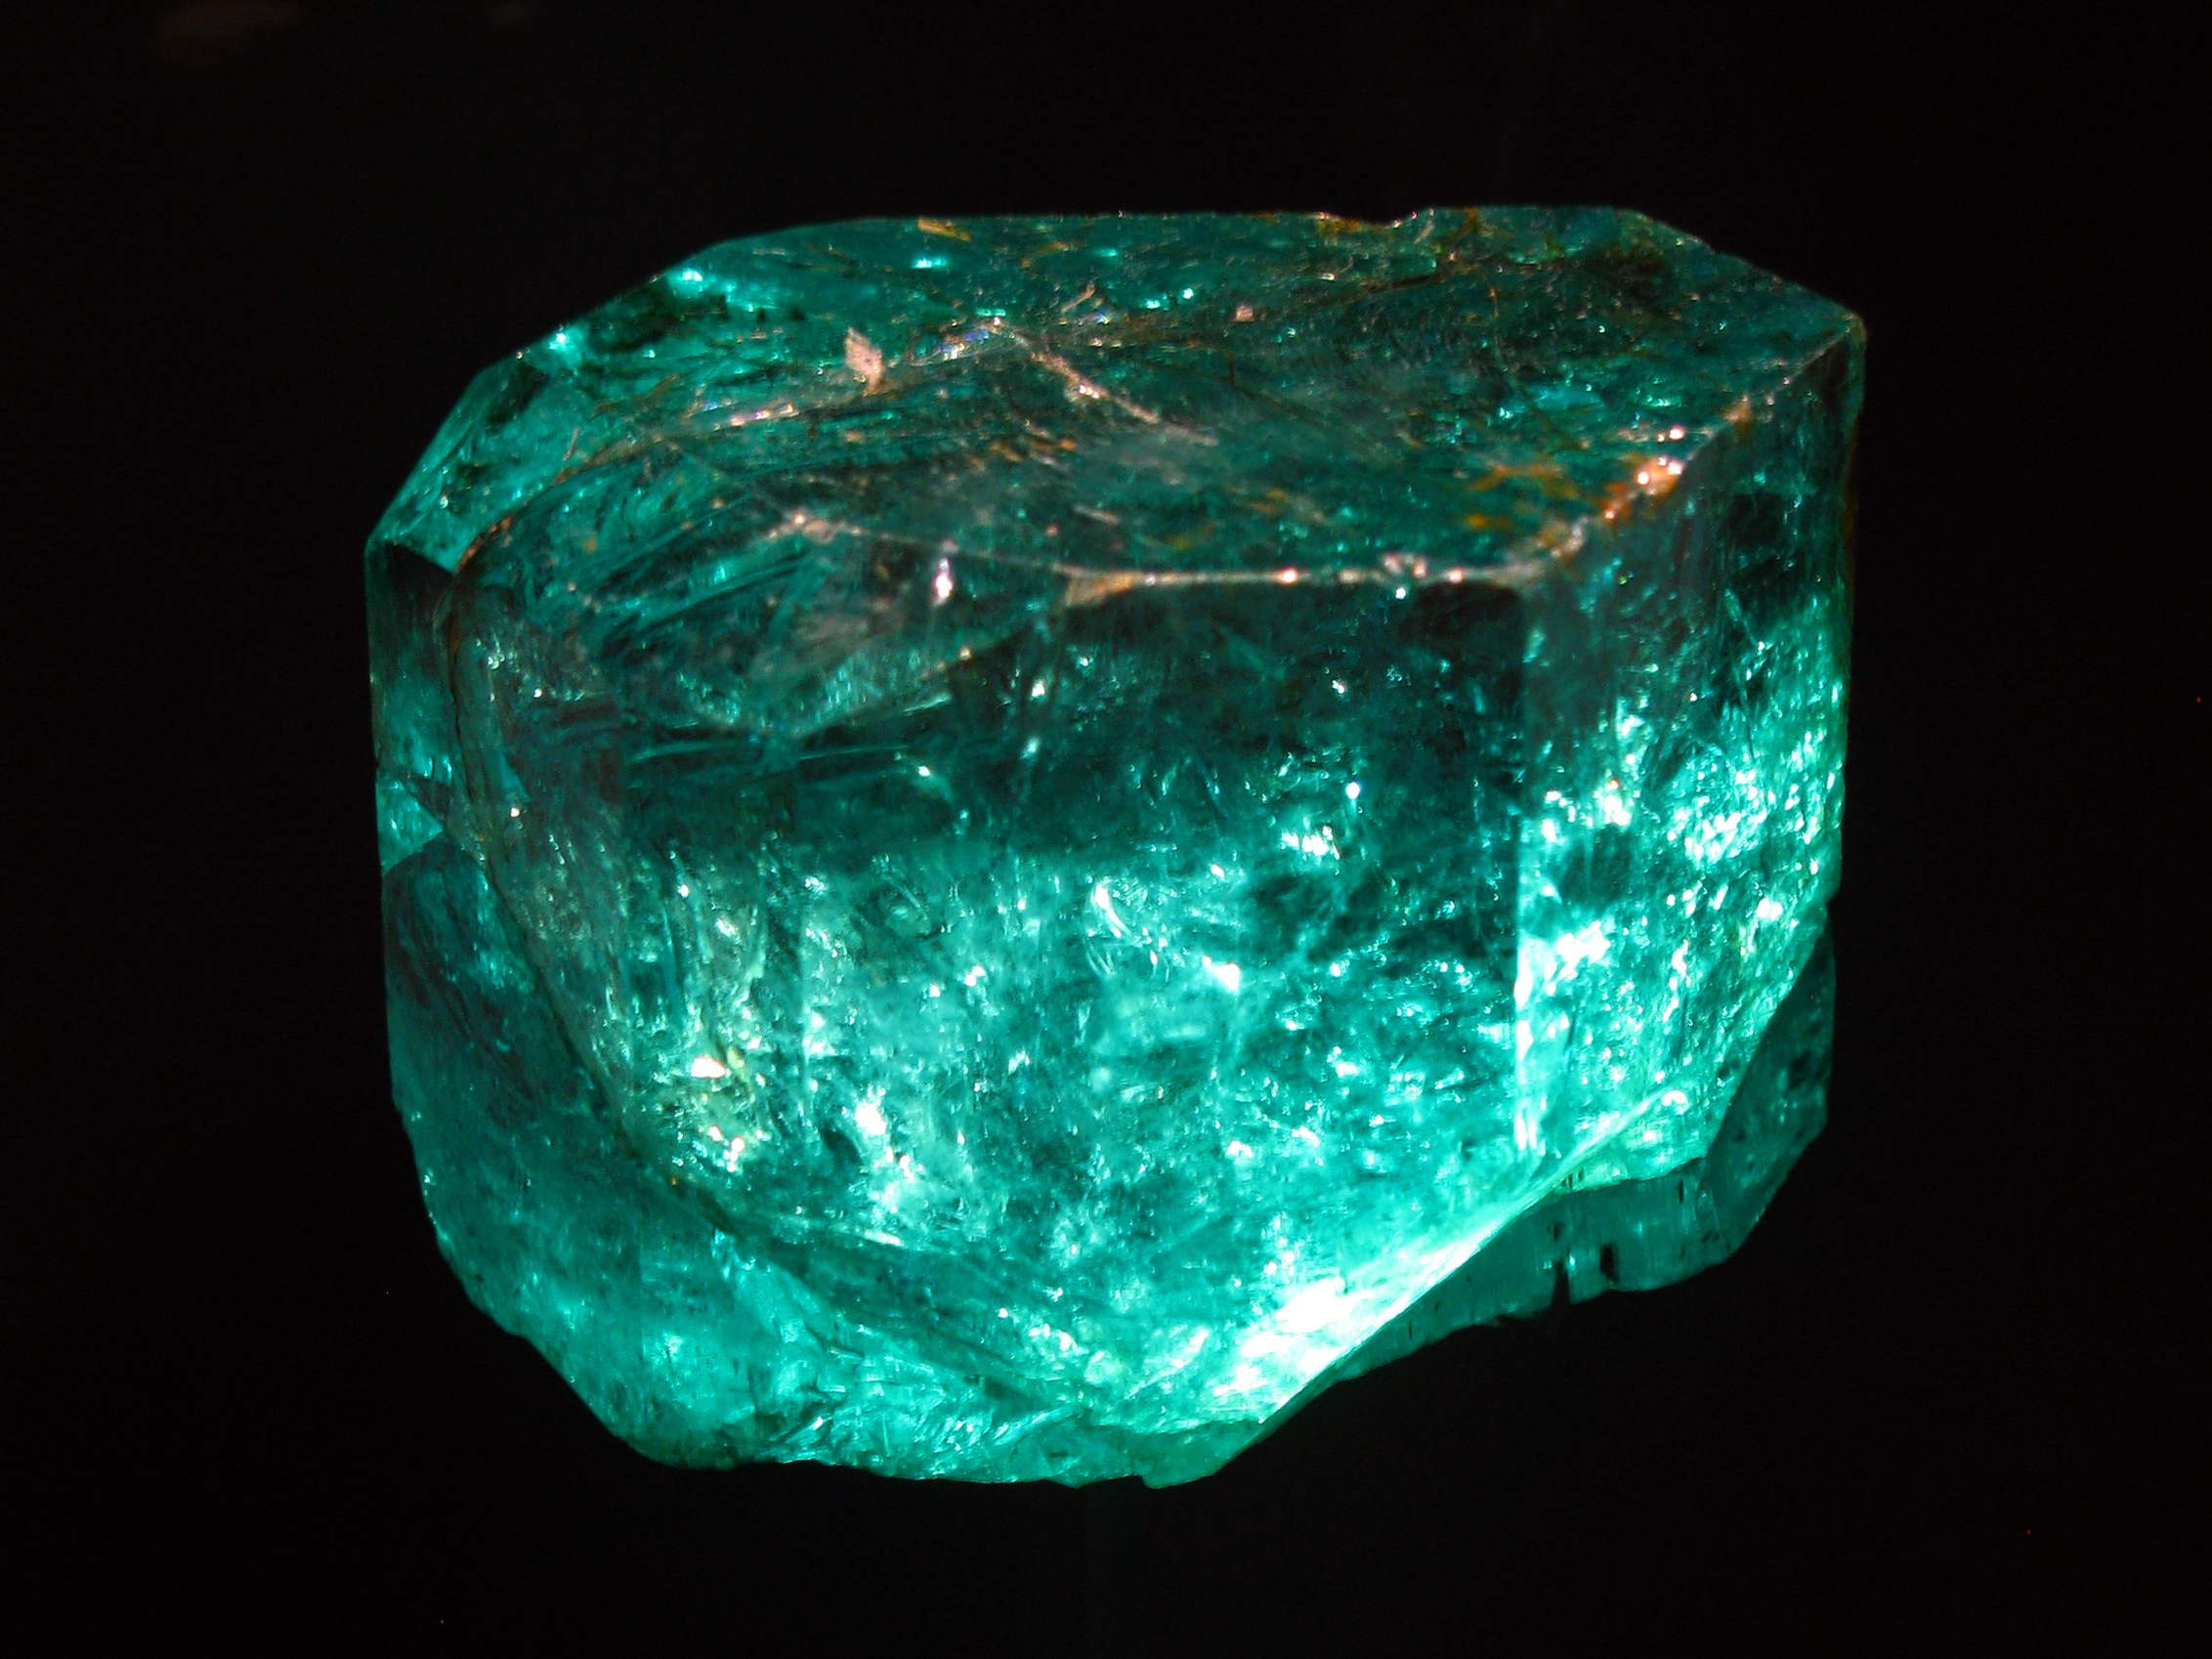 This is not the Bahia emerald. The Bahia emerald is much larger